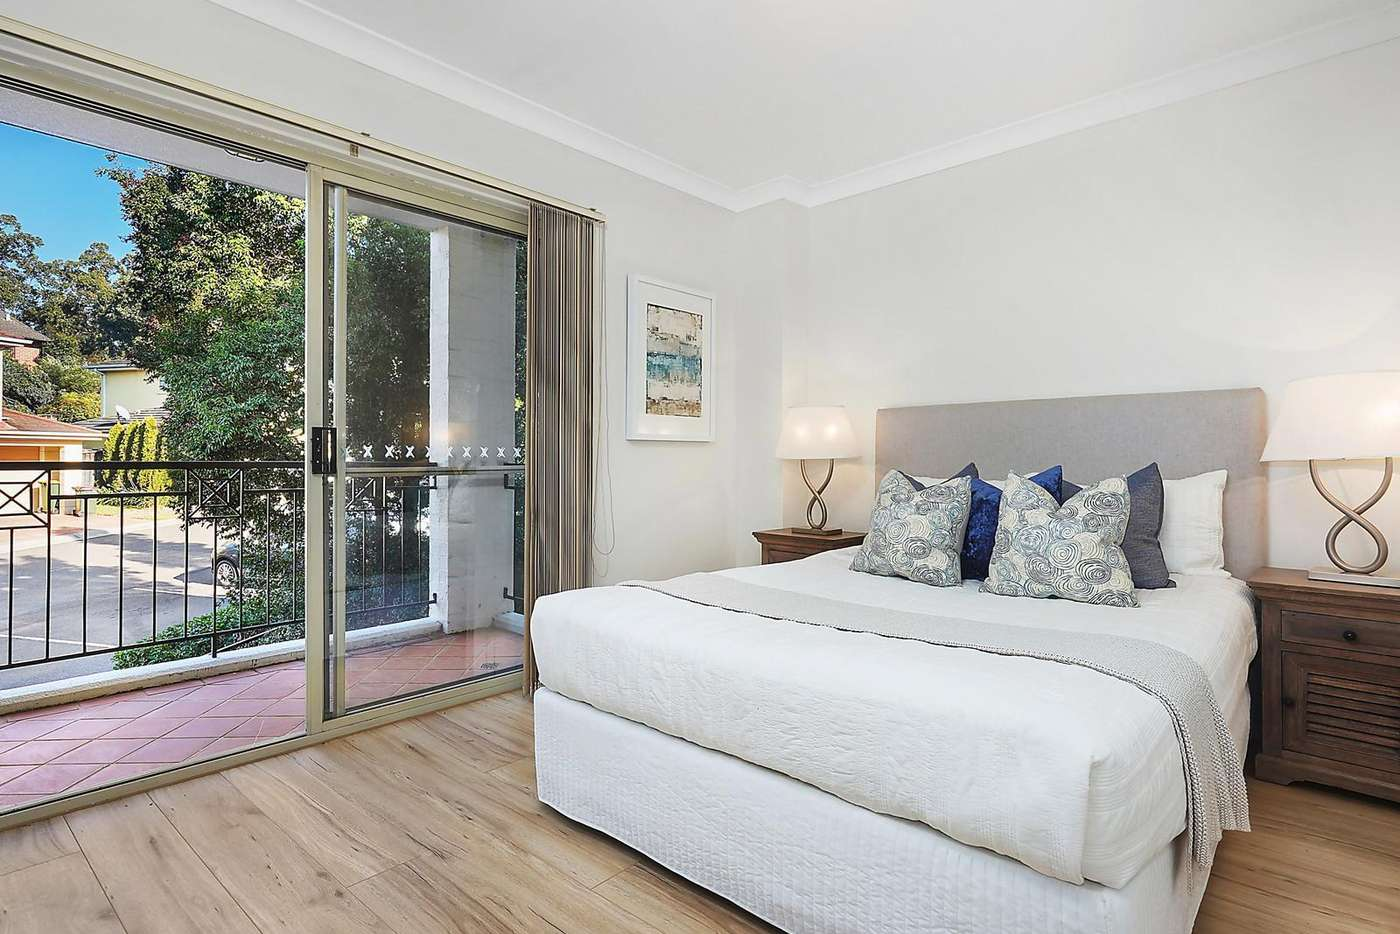 Fifth view of Homely apartment listing, 74/6 Nile Close, Marsfield NSW 2122